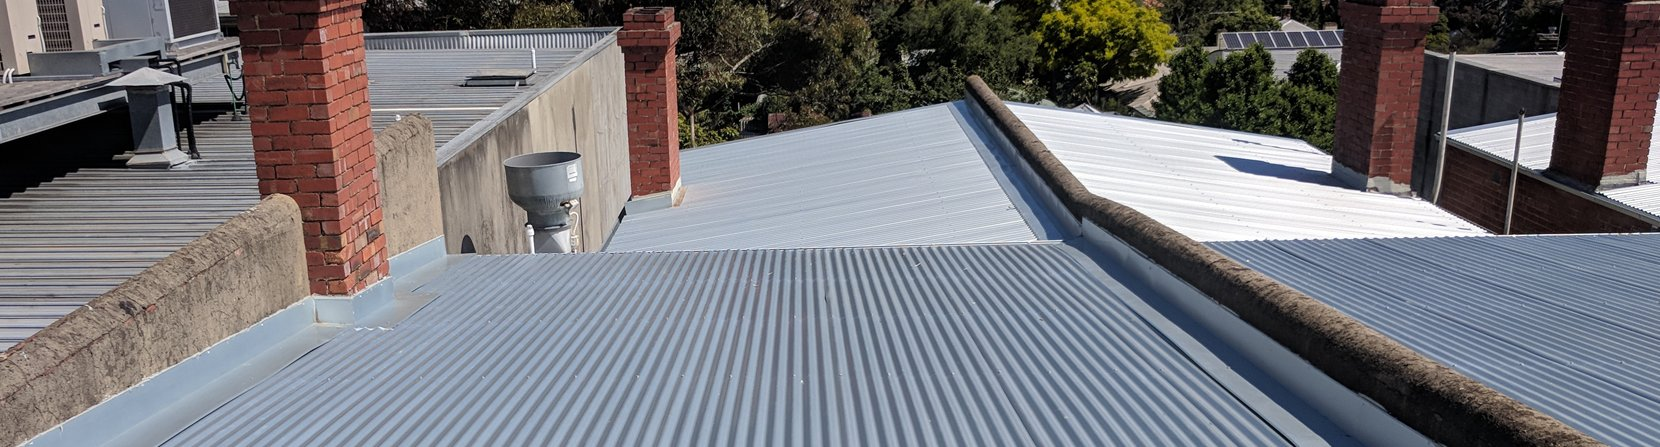 Watermaster COLORBOND roofing Melbourne